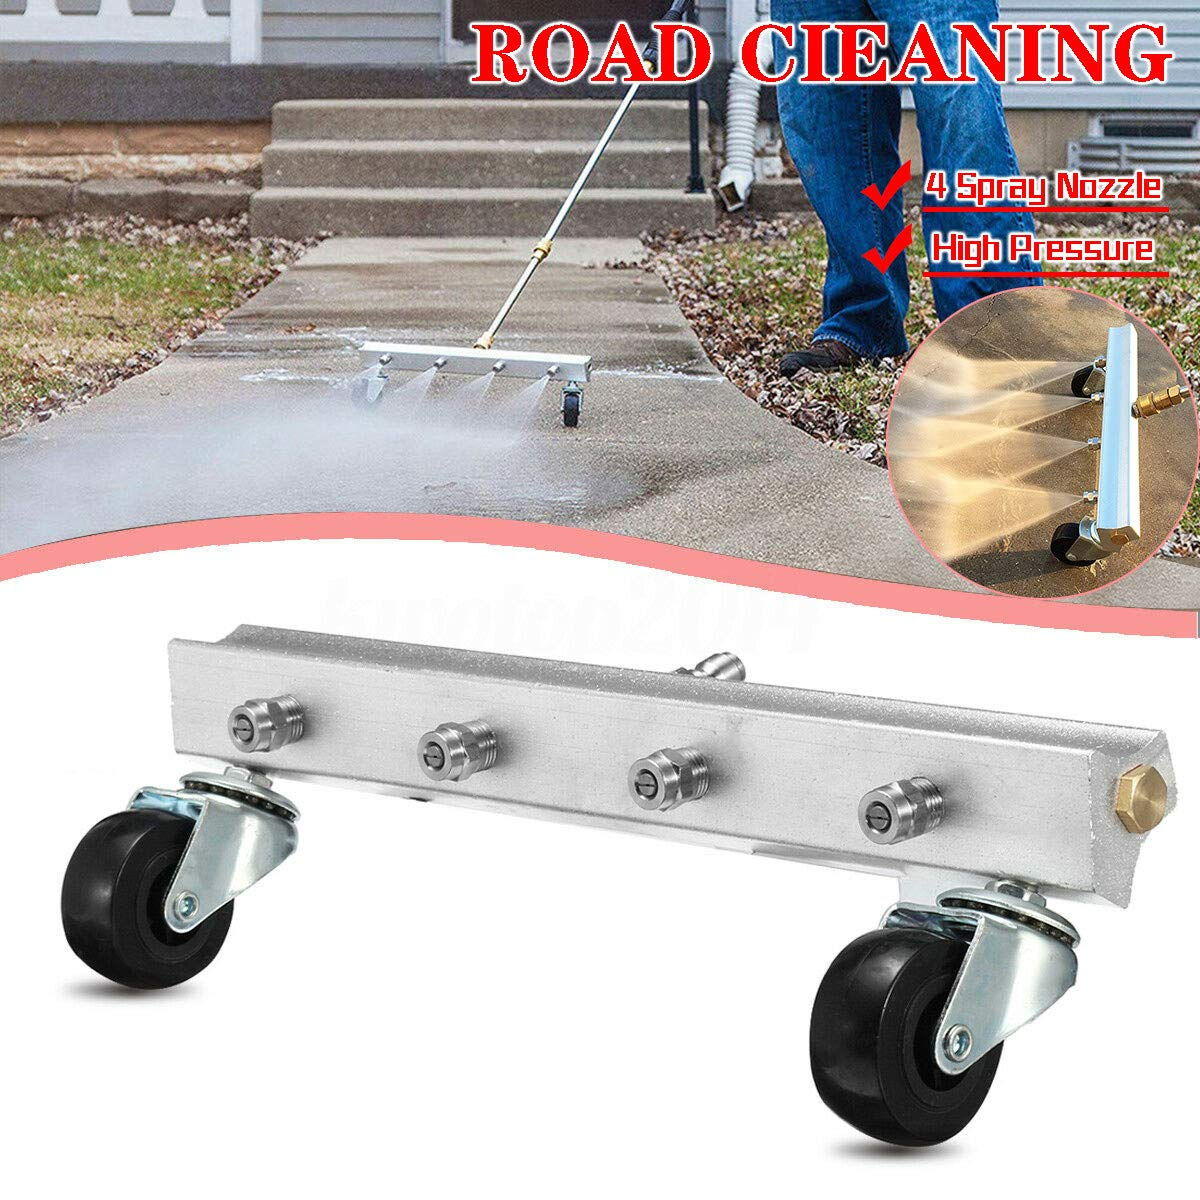 SMOXX Car Accessories Automobile Chassis Cleaning And Road Cleaning Nozzle Water Broom Power Washer